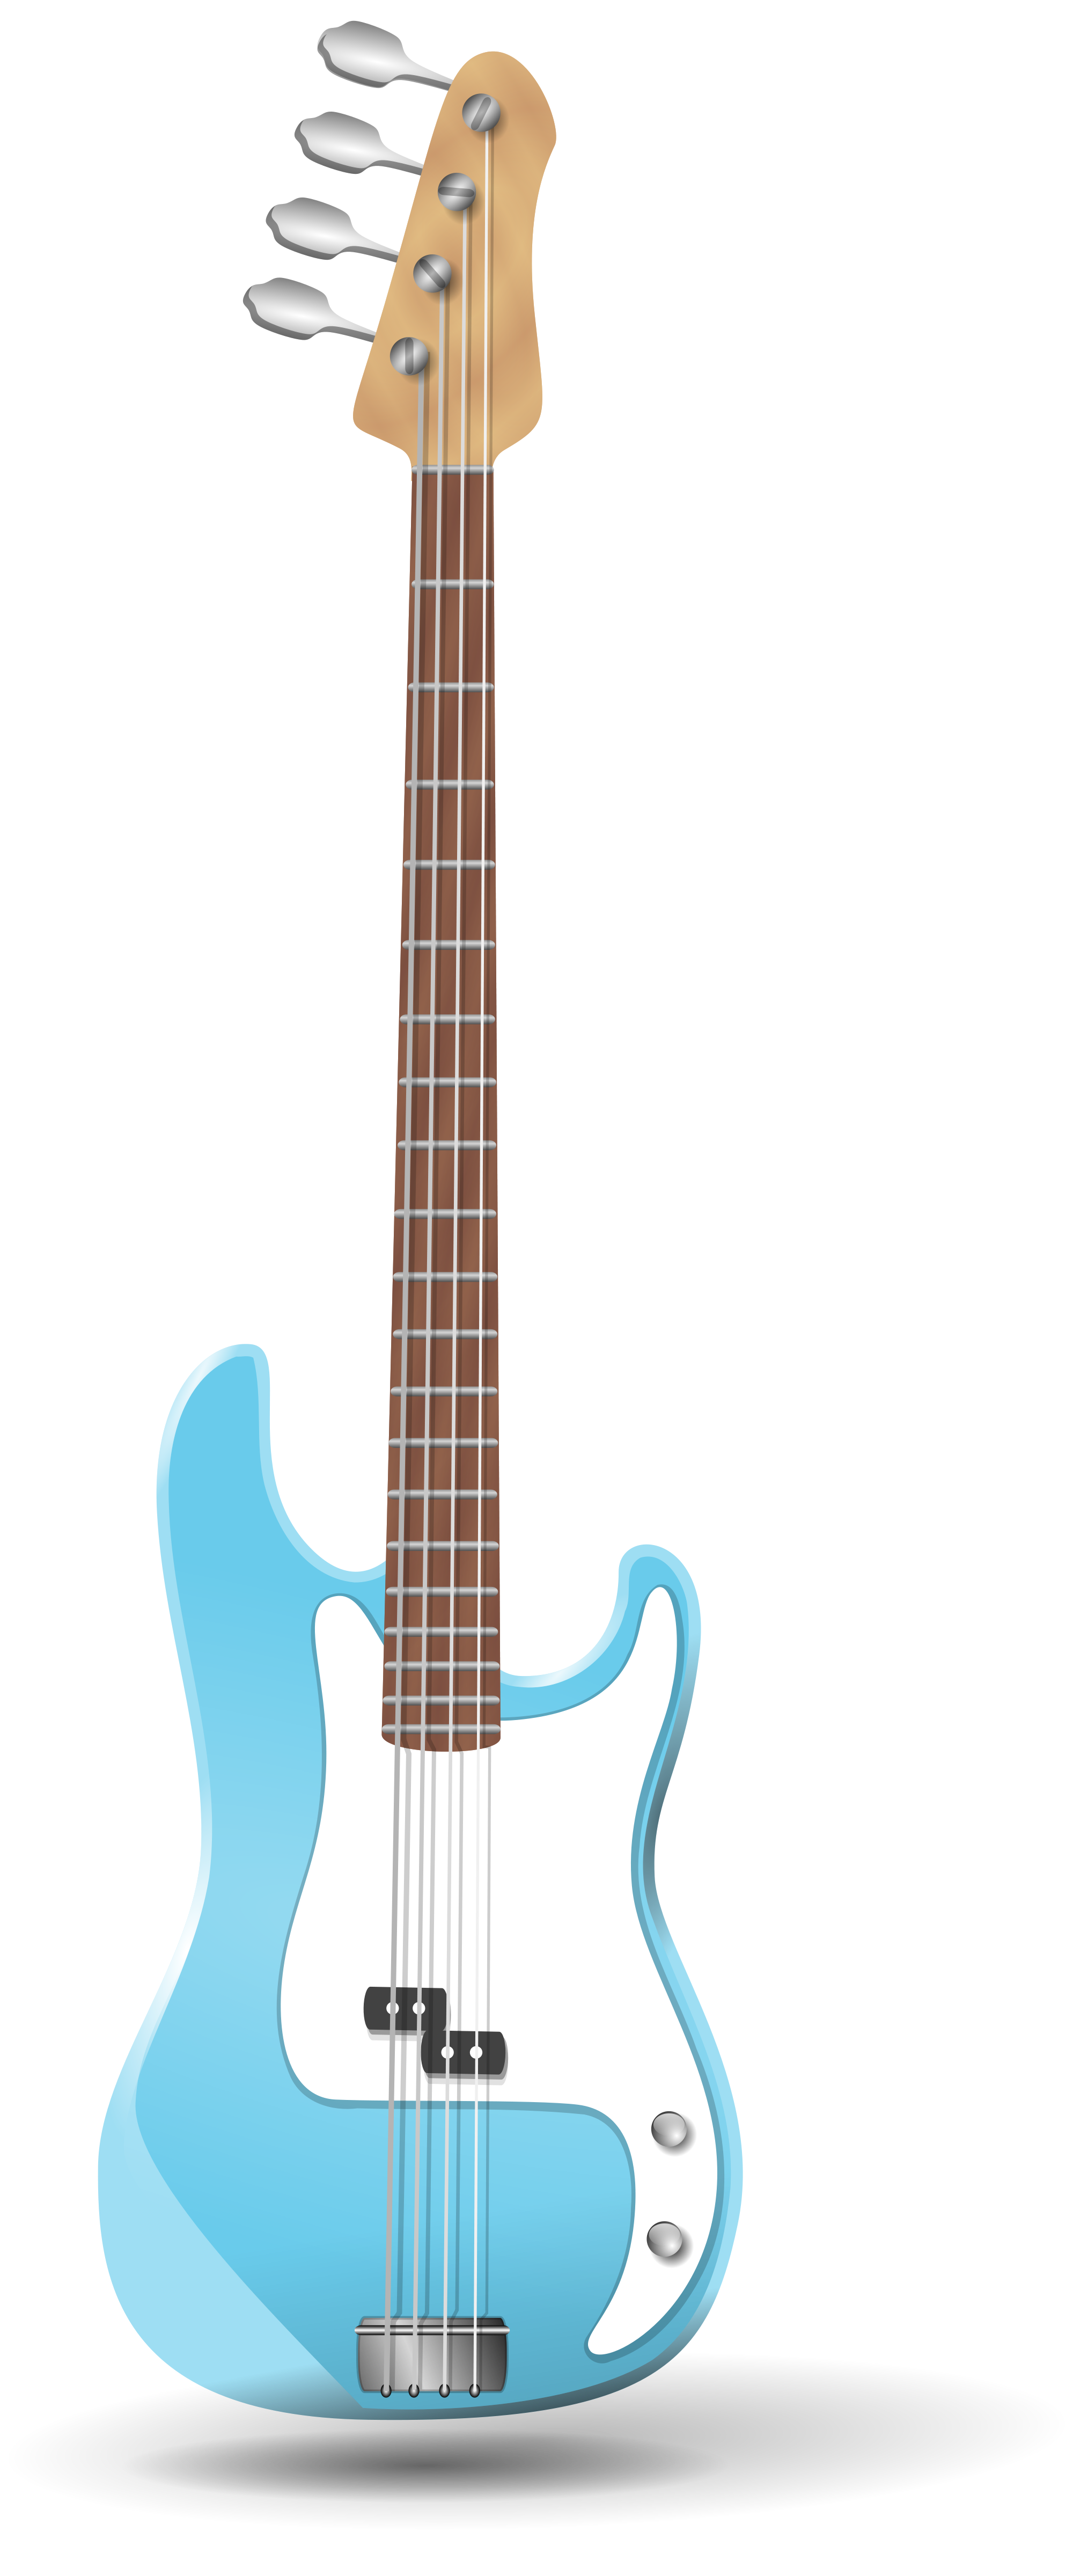 Bass svg wikimedia commons. Clipart guitar file